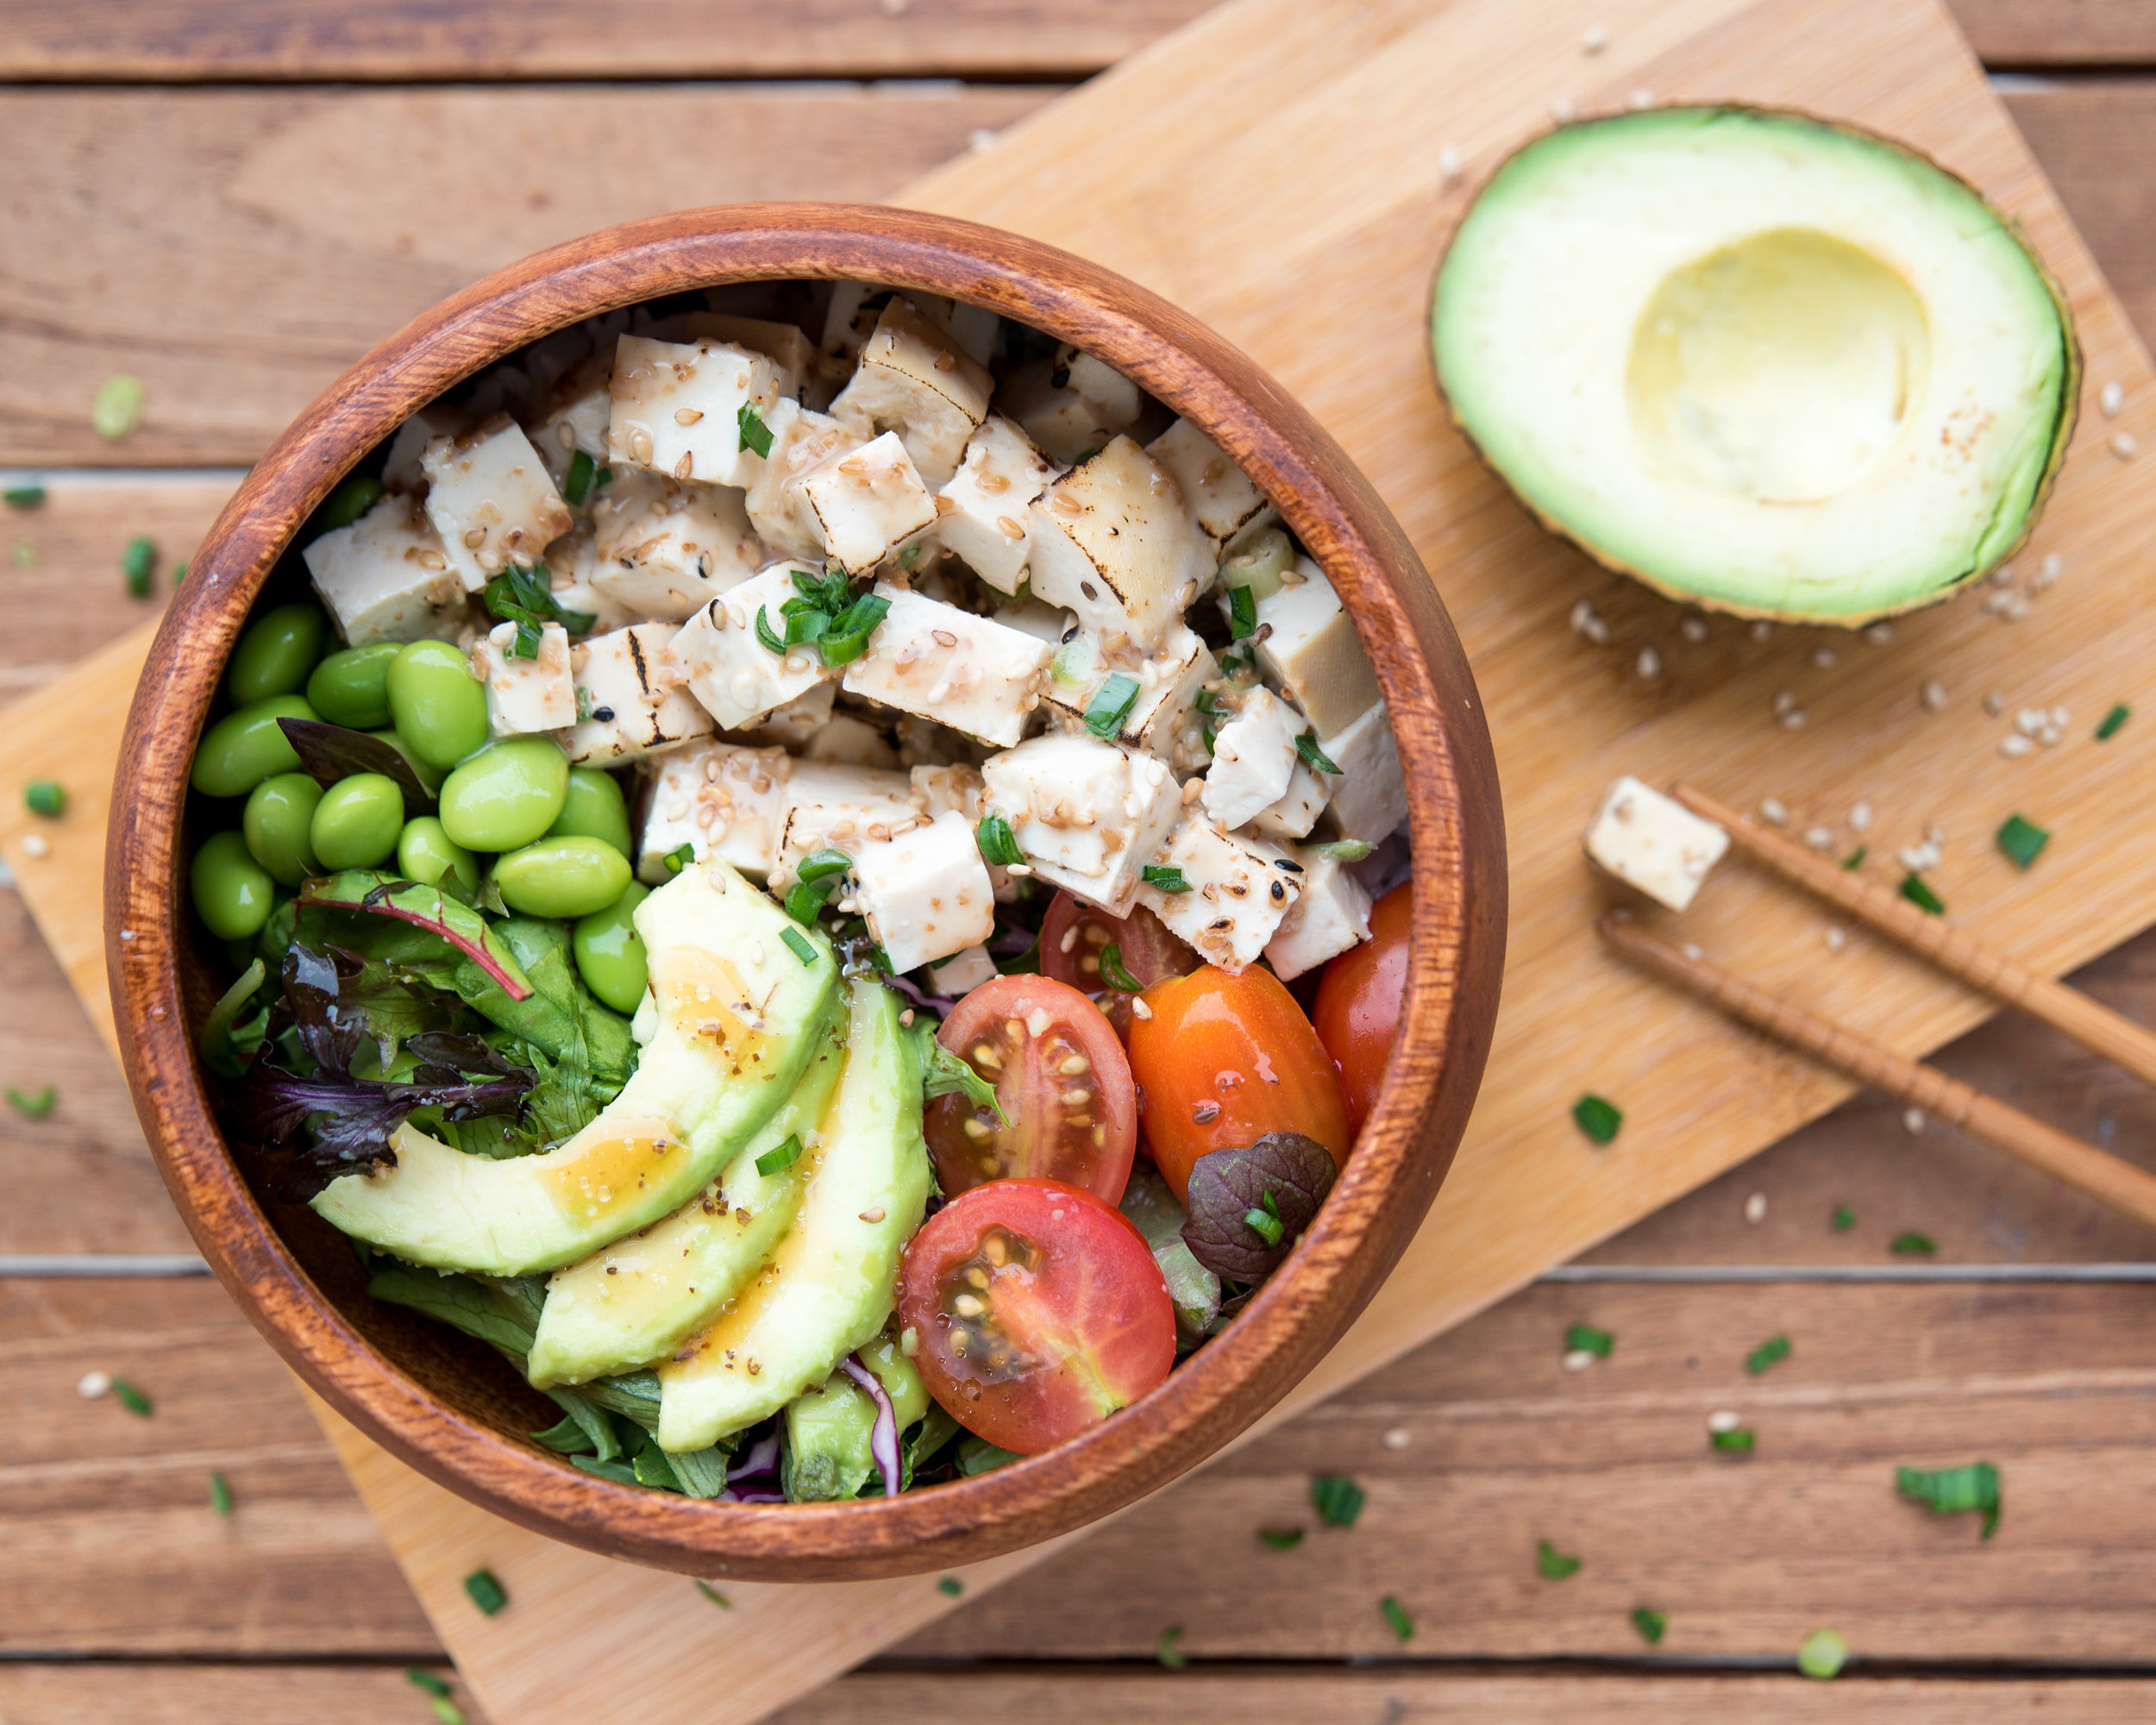 Torched_Torched Tofu and Avocado Bowl_2880x2304.jpg